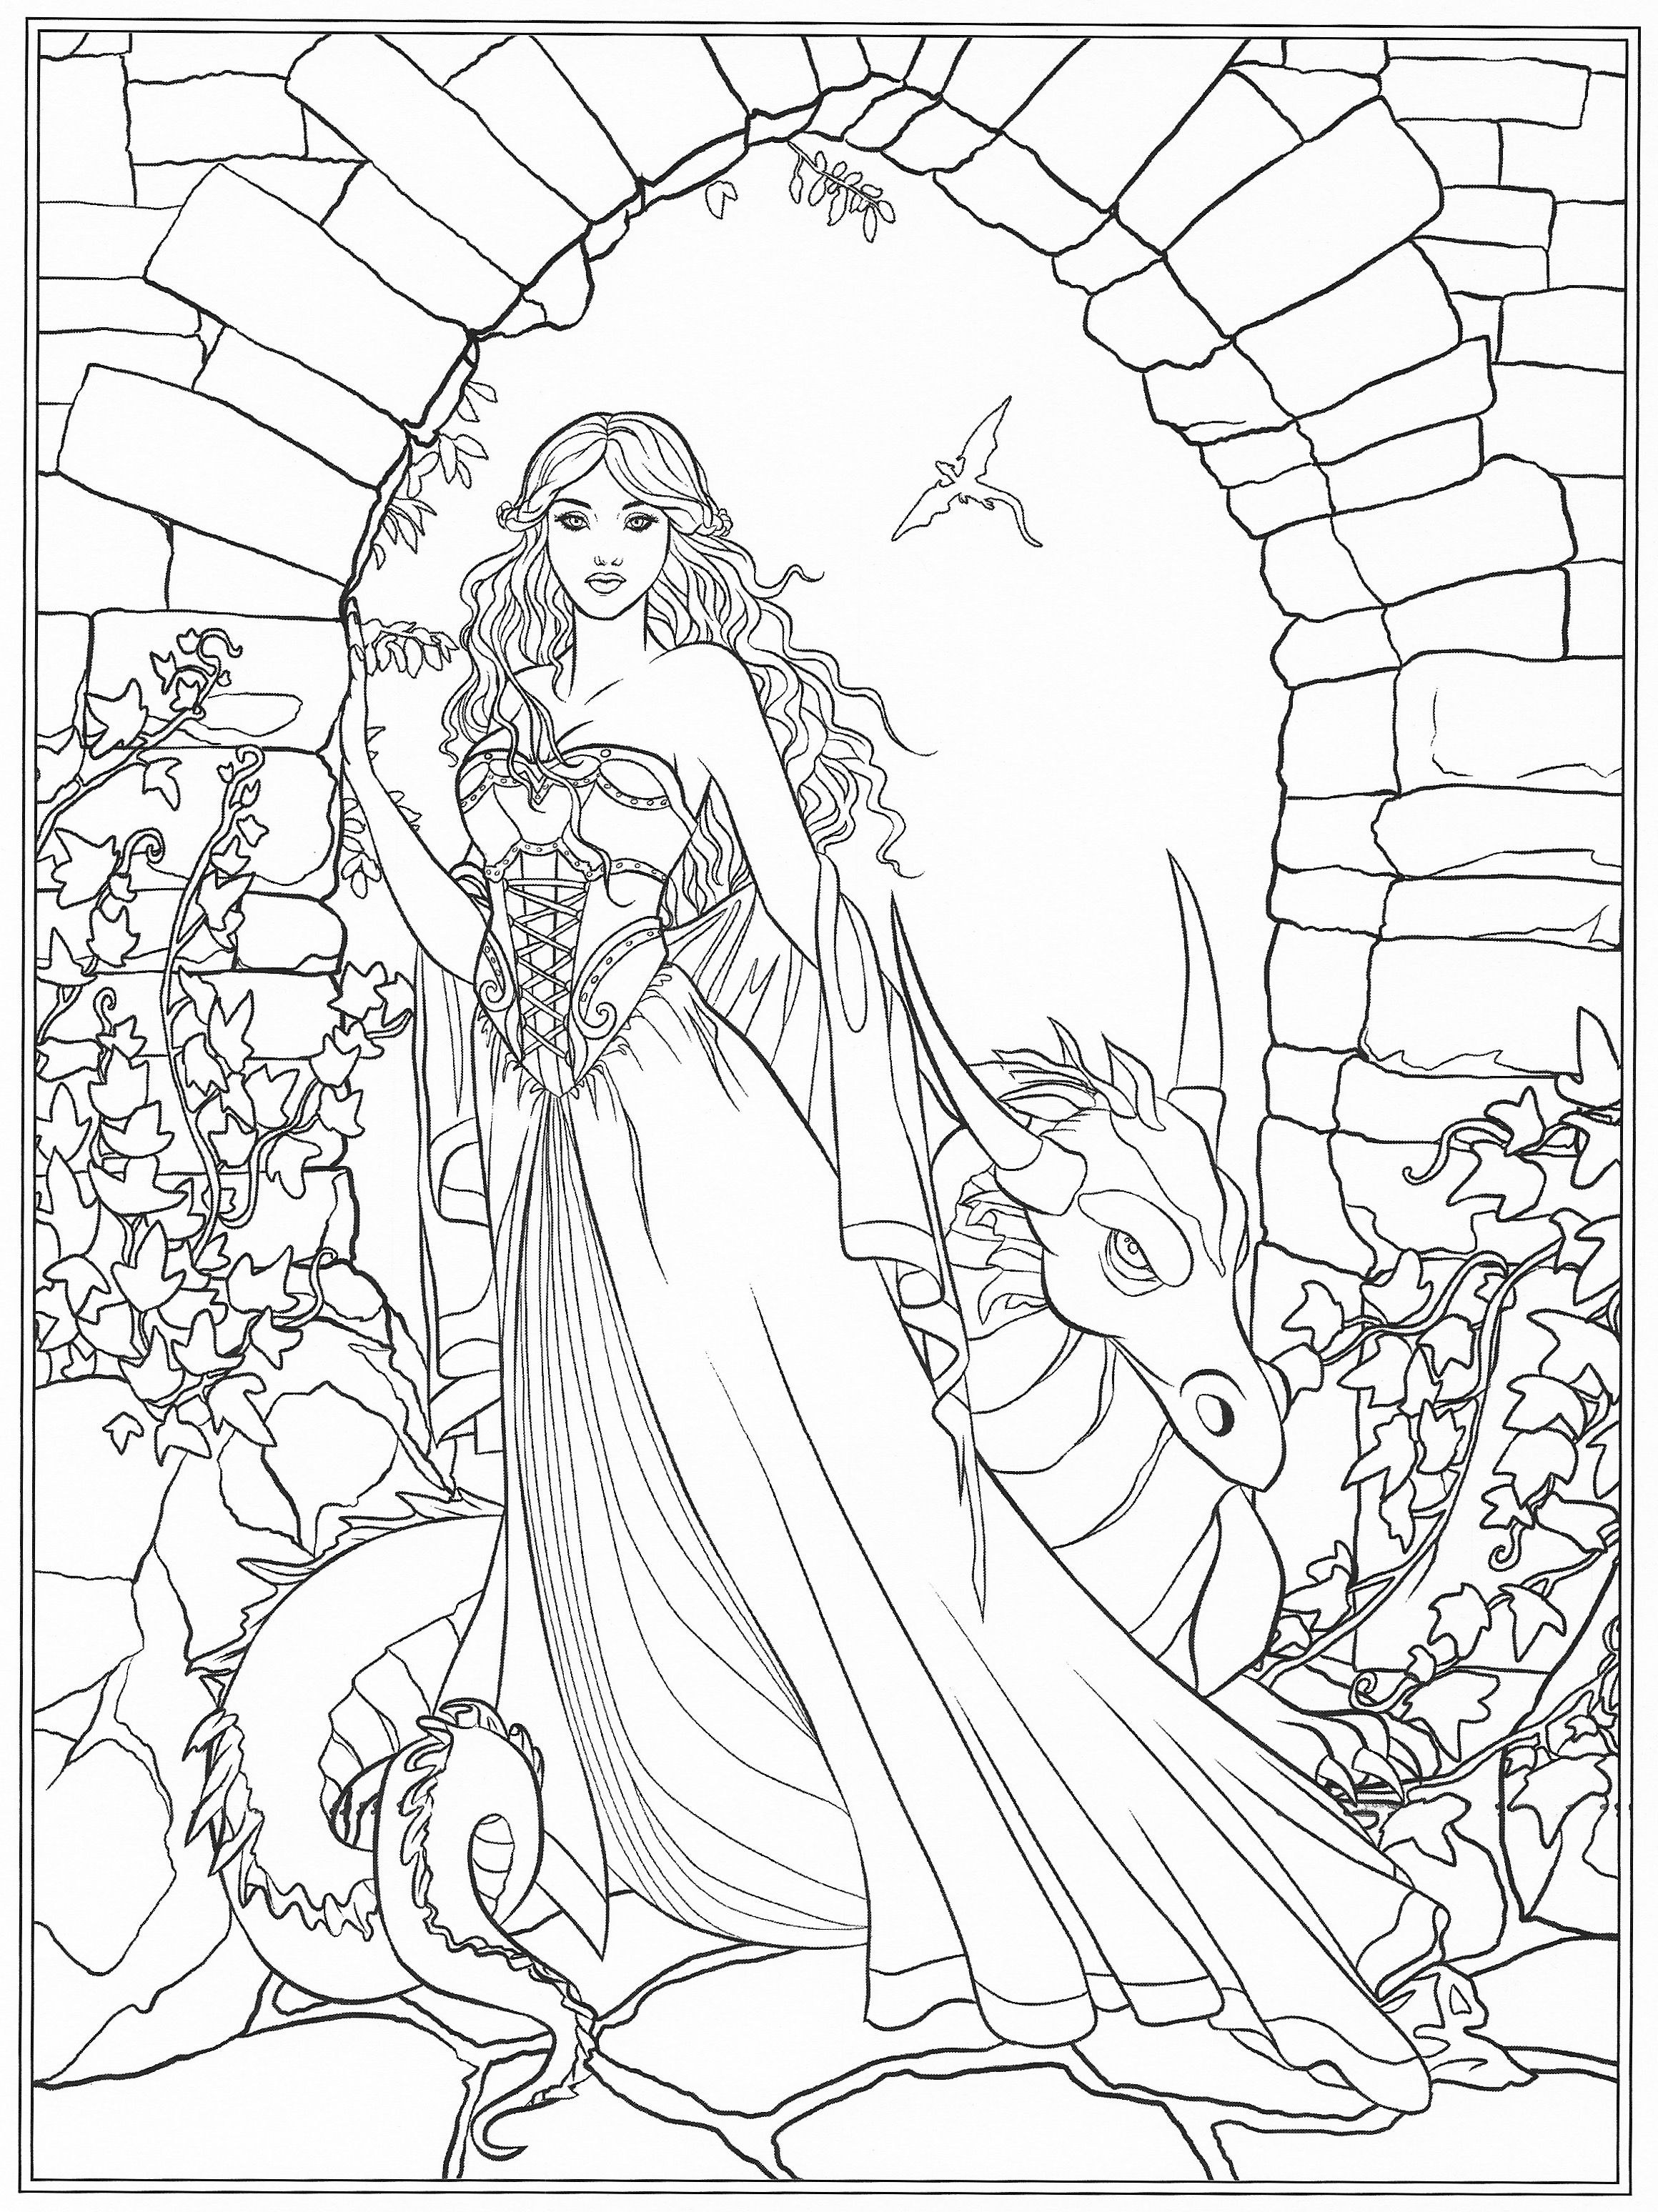 Gothic dark fantasy coloring book fantasy art coloring by selina volume 6 selina fenech 9780994355461 amazon com books